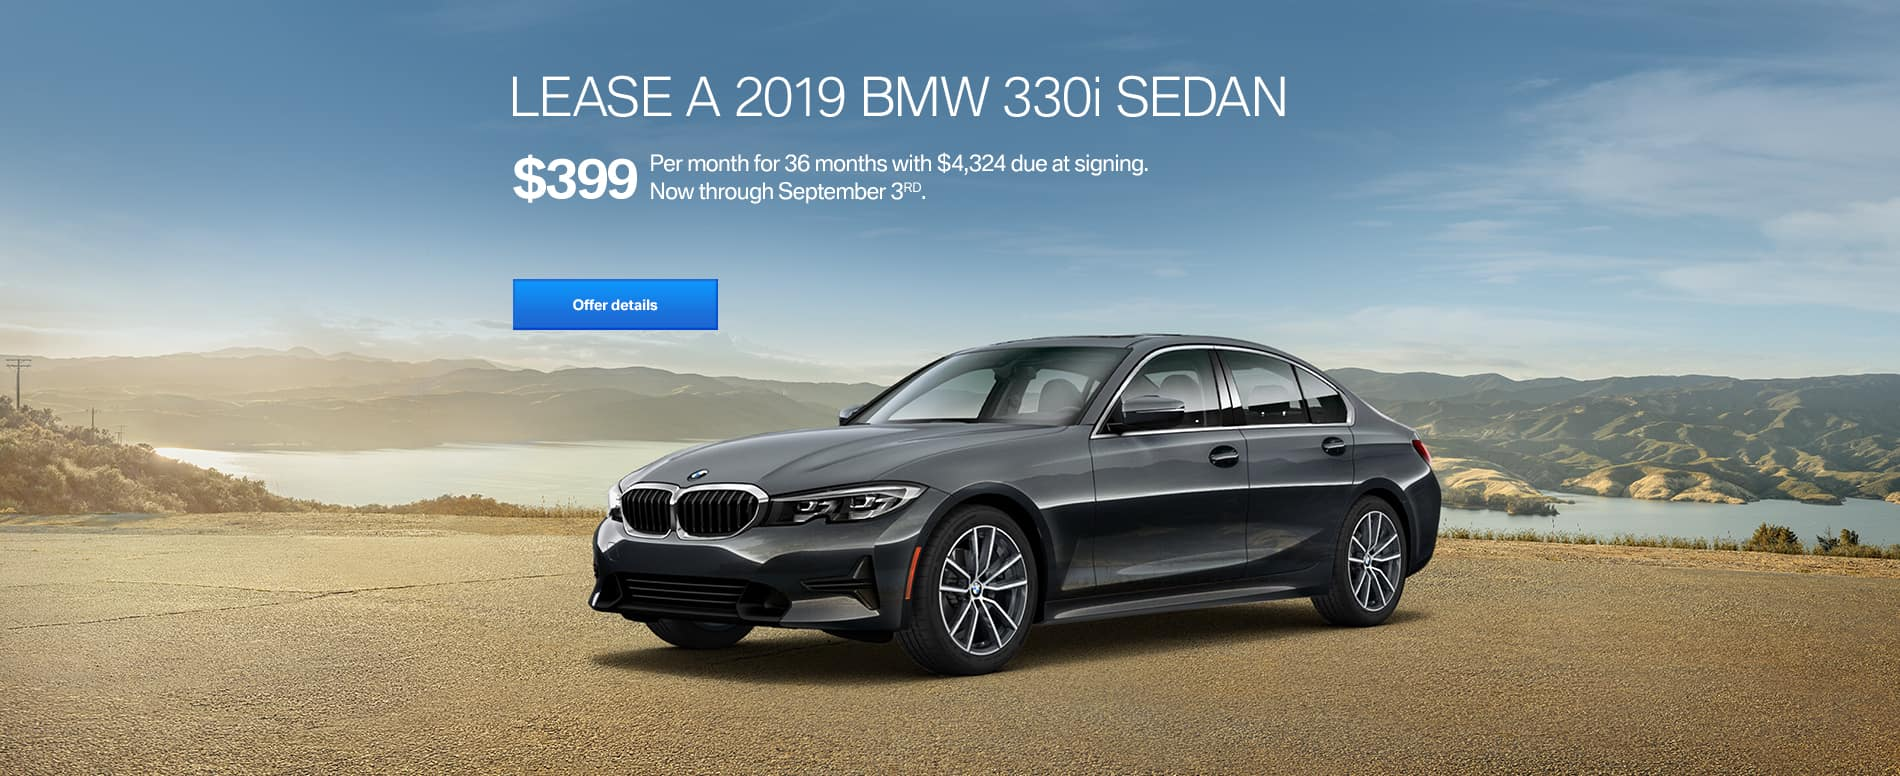 Pacific BMW | Your Trusted BMW Dealer in Glendale, CA